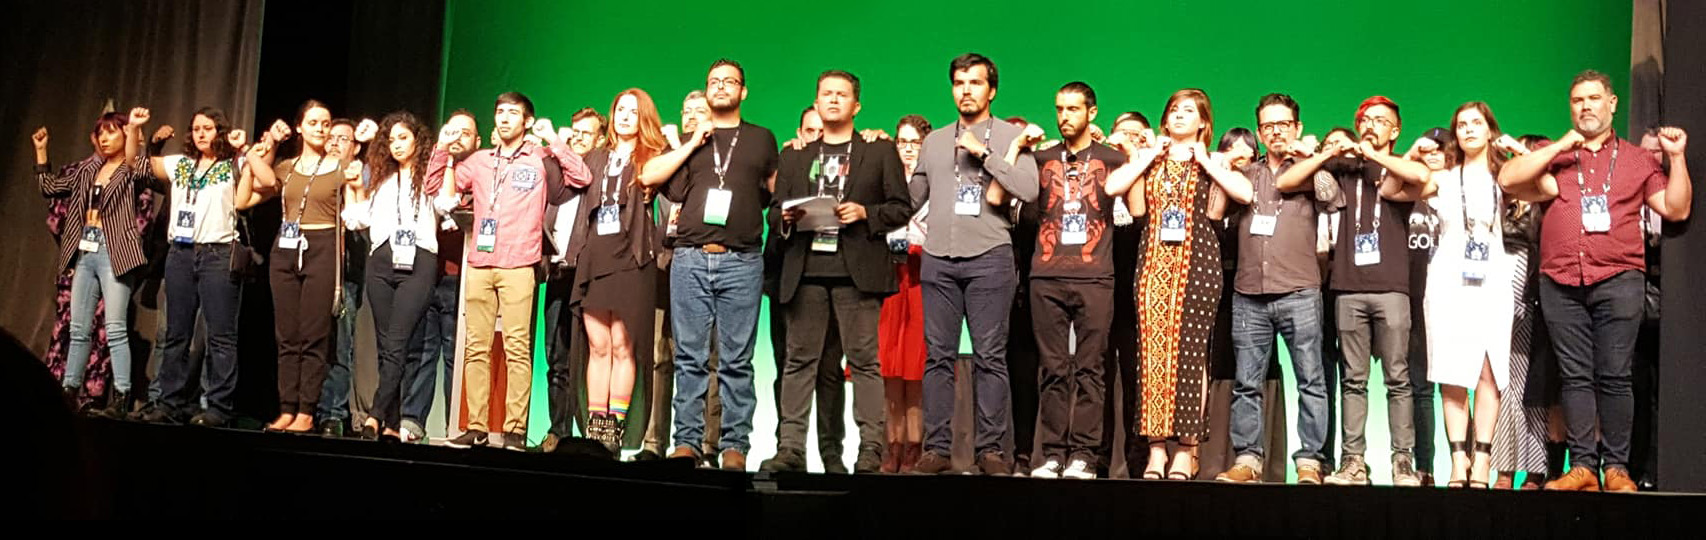 Full stage of Mexicanx Initiative members Xing up during the opening ceremonies at Worldcon 76